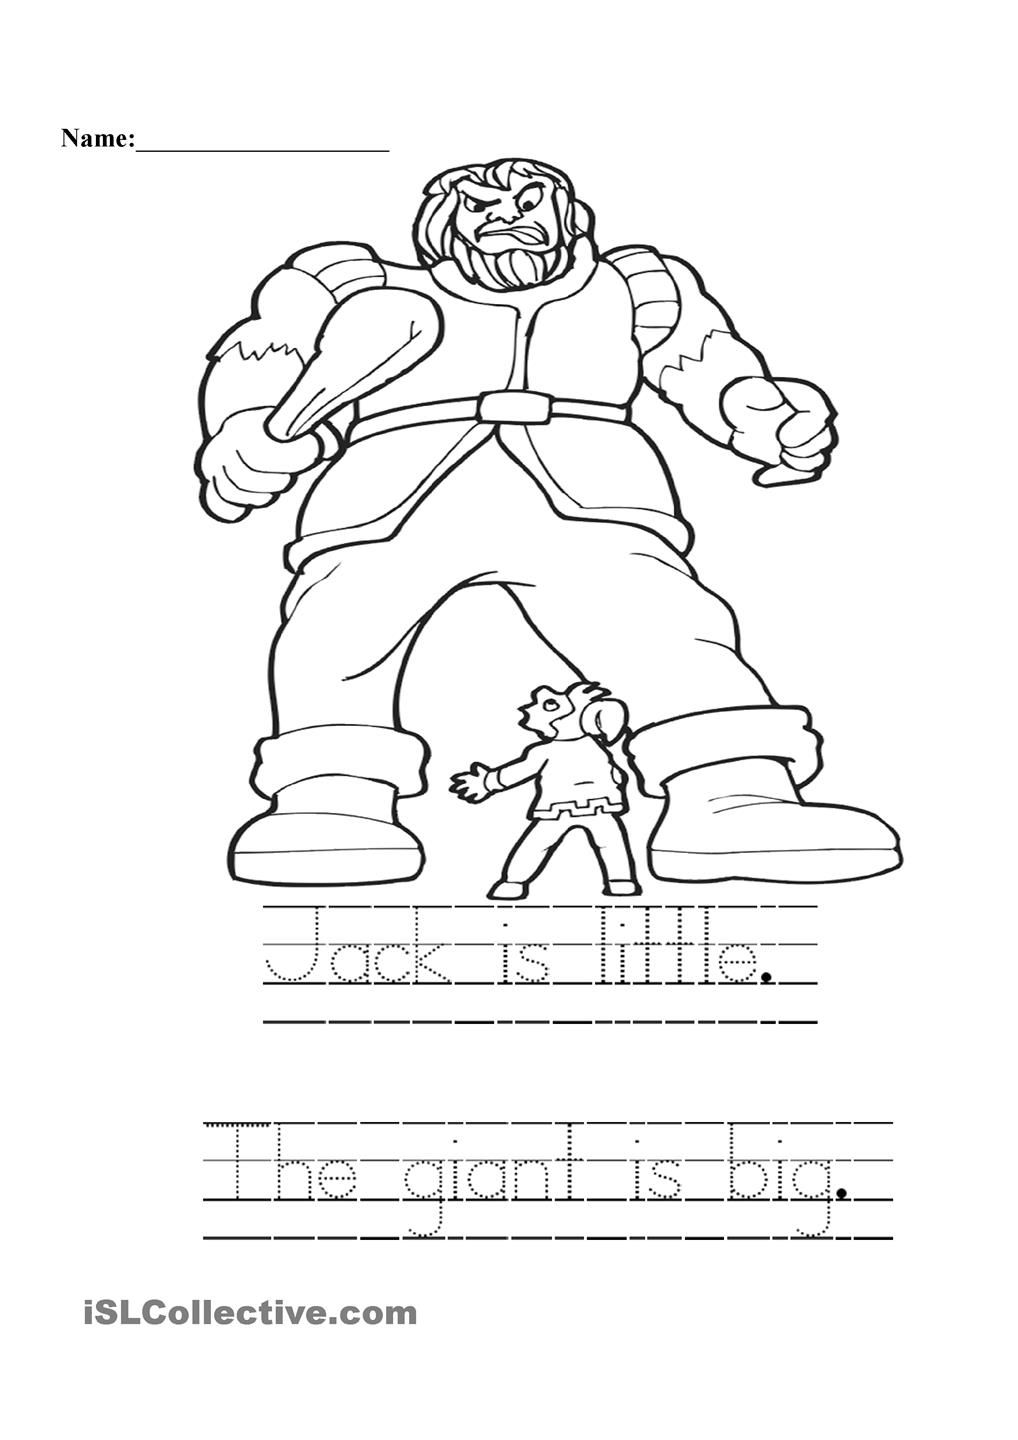 Jack And The Giant Jack And The Beanstalk Cute Coloring Pages Coloring Pages [ 1440 x 1018 Pixel ]